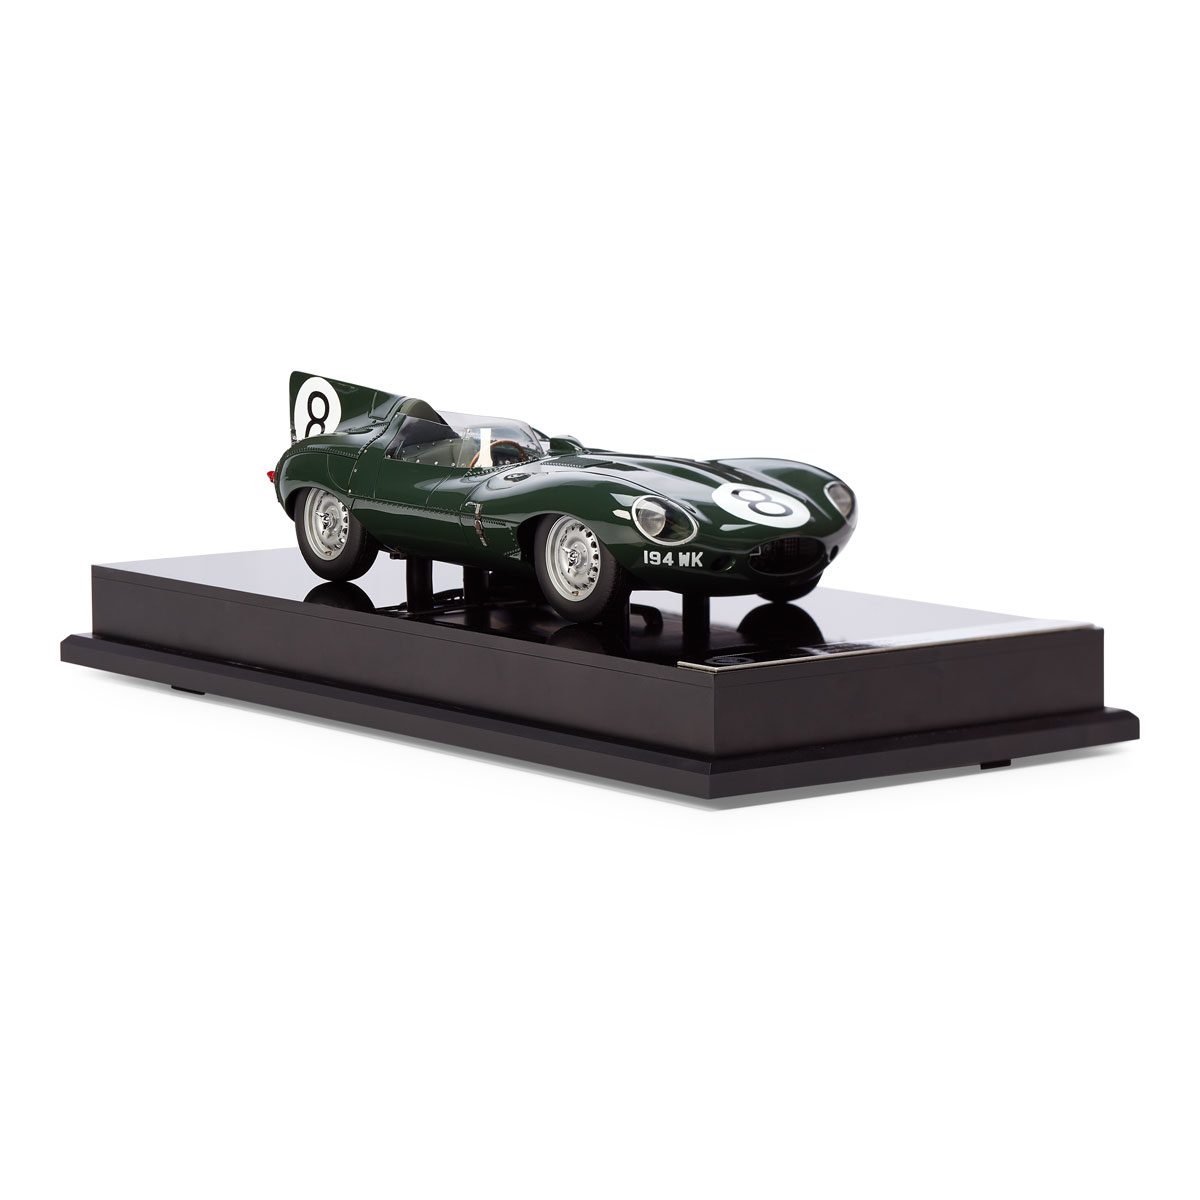 Ralph Lauren 1955 Jaguar XKD Sculpture